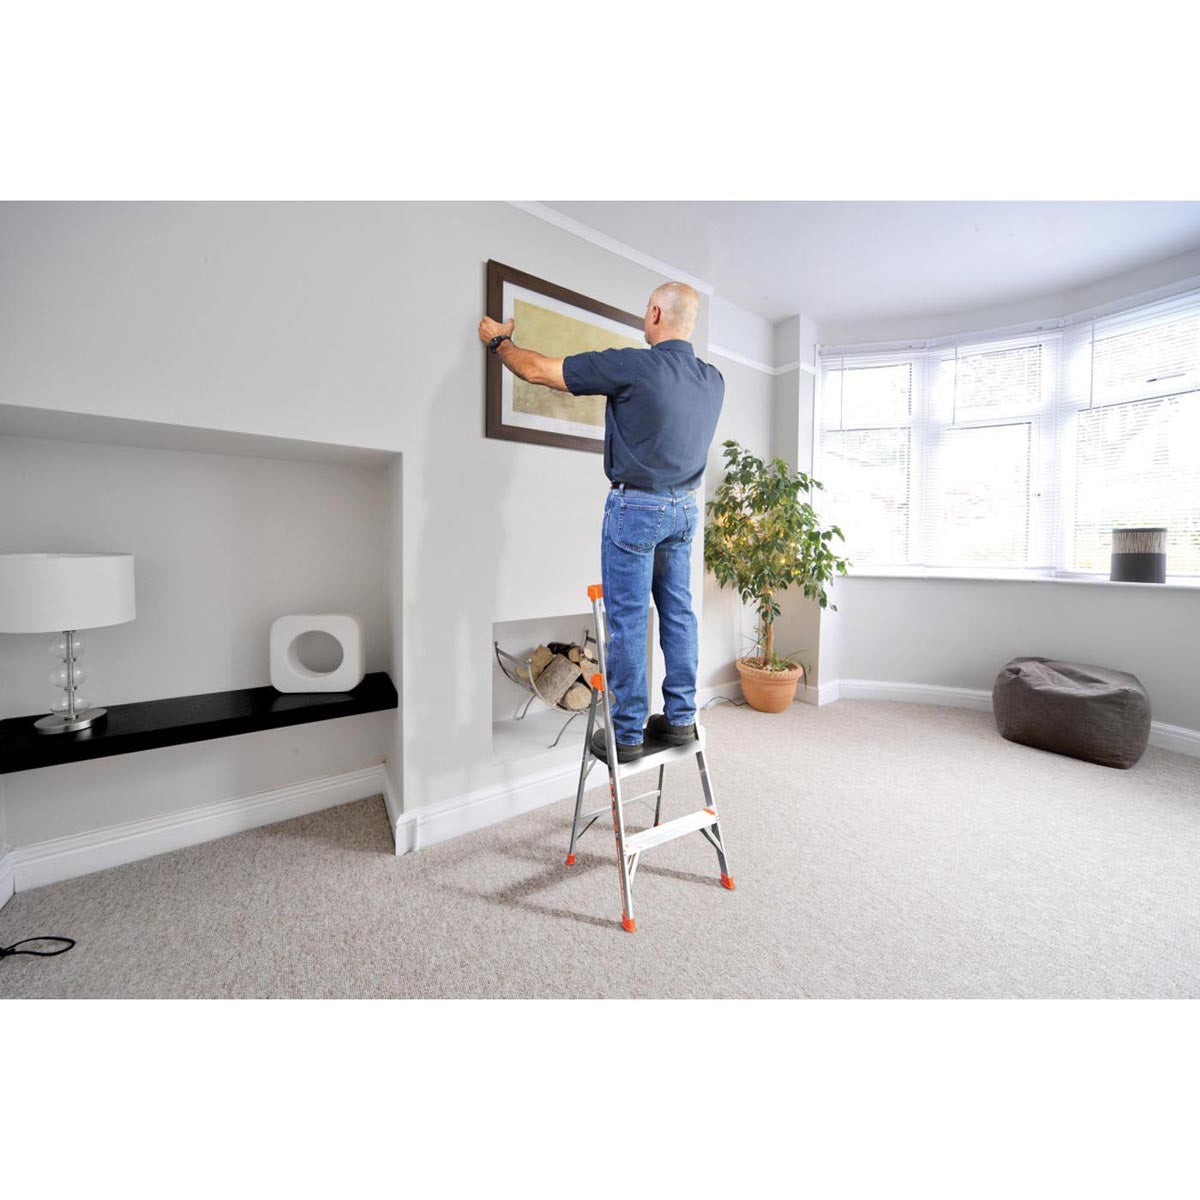 The vast majority of ladder accidents are caused by two things: using the wrong ladder for the job and over-reaching. We designed the Little Giant Dark Horse to help you avoid these common problems. The Dark Horse is the only Fiberglass multi-use ladder on the market.